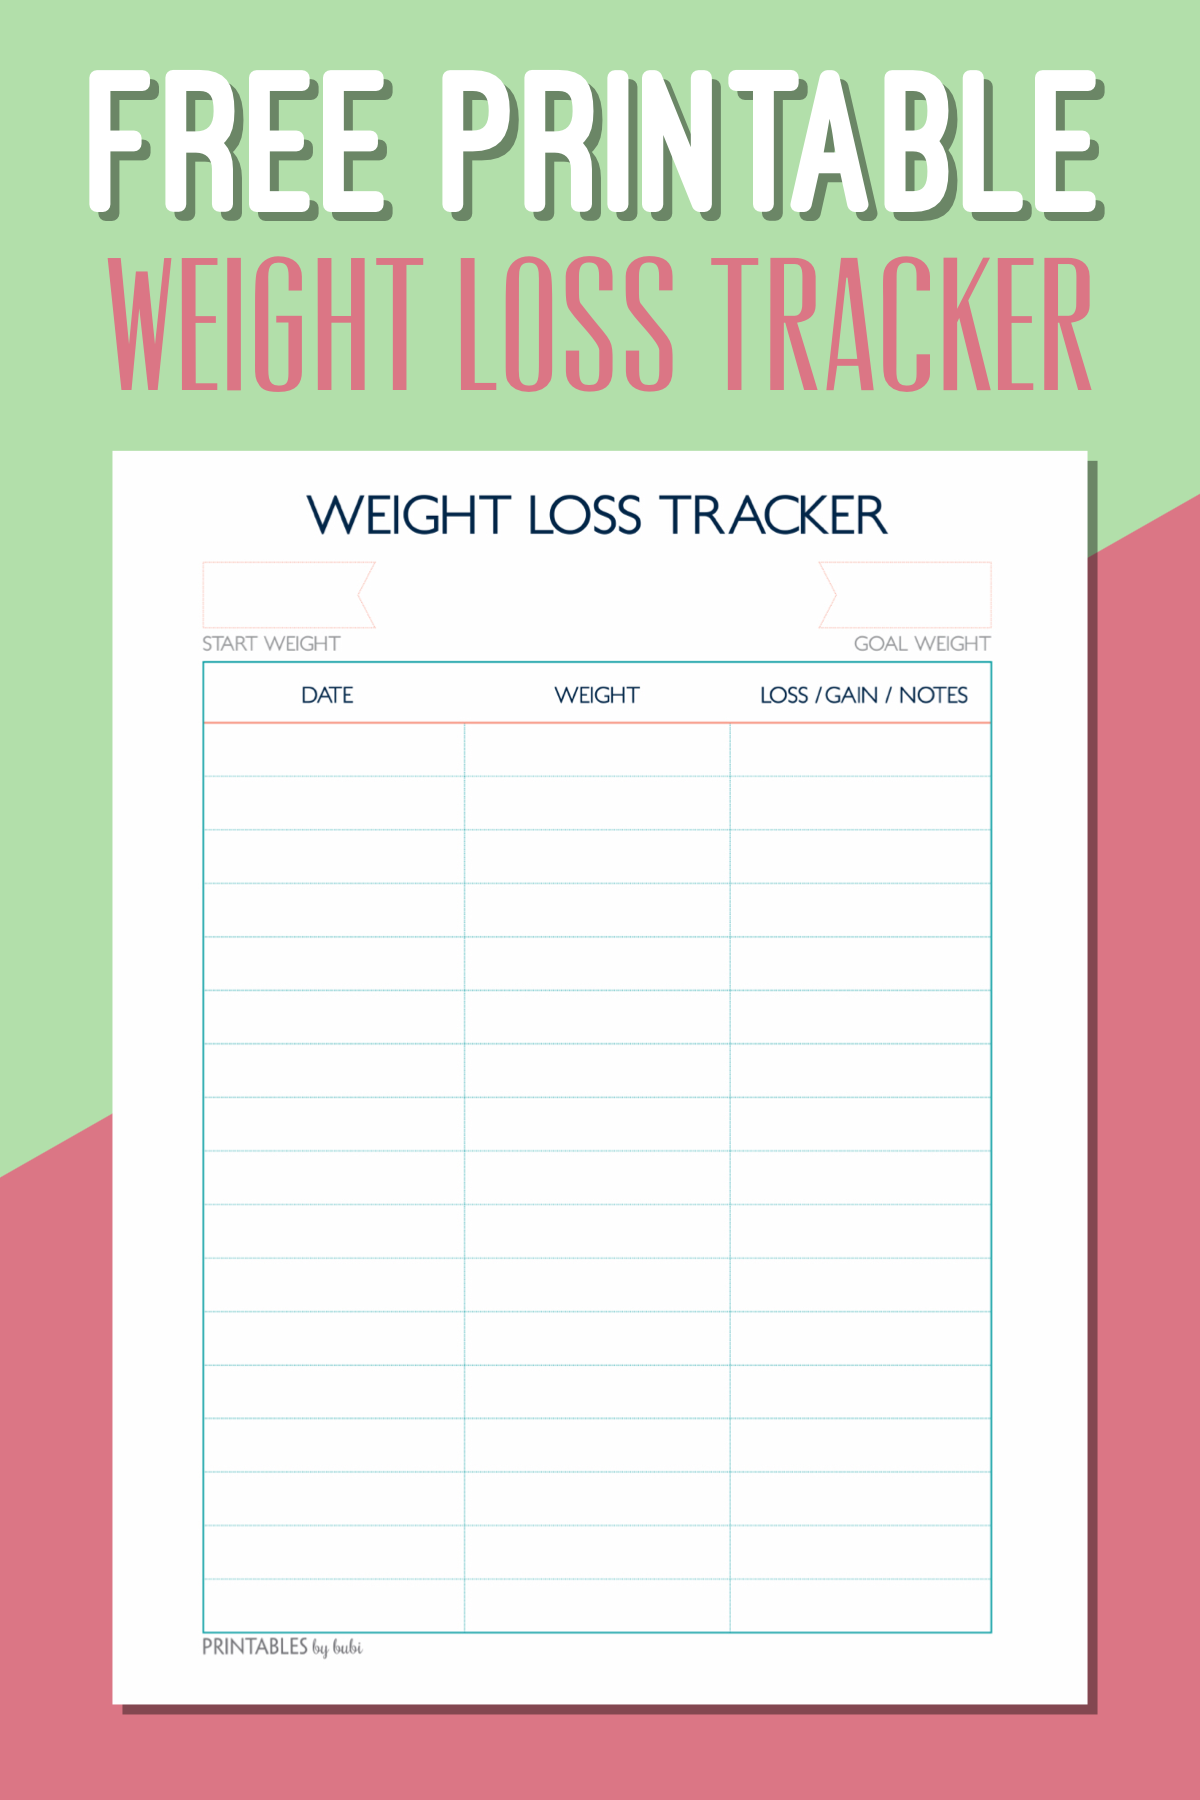 Free printable weight loss tracker  instant download pdf fitness motivation diet log also rh pinterest